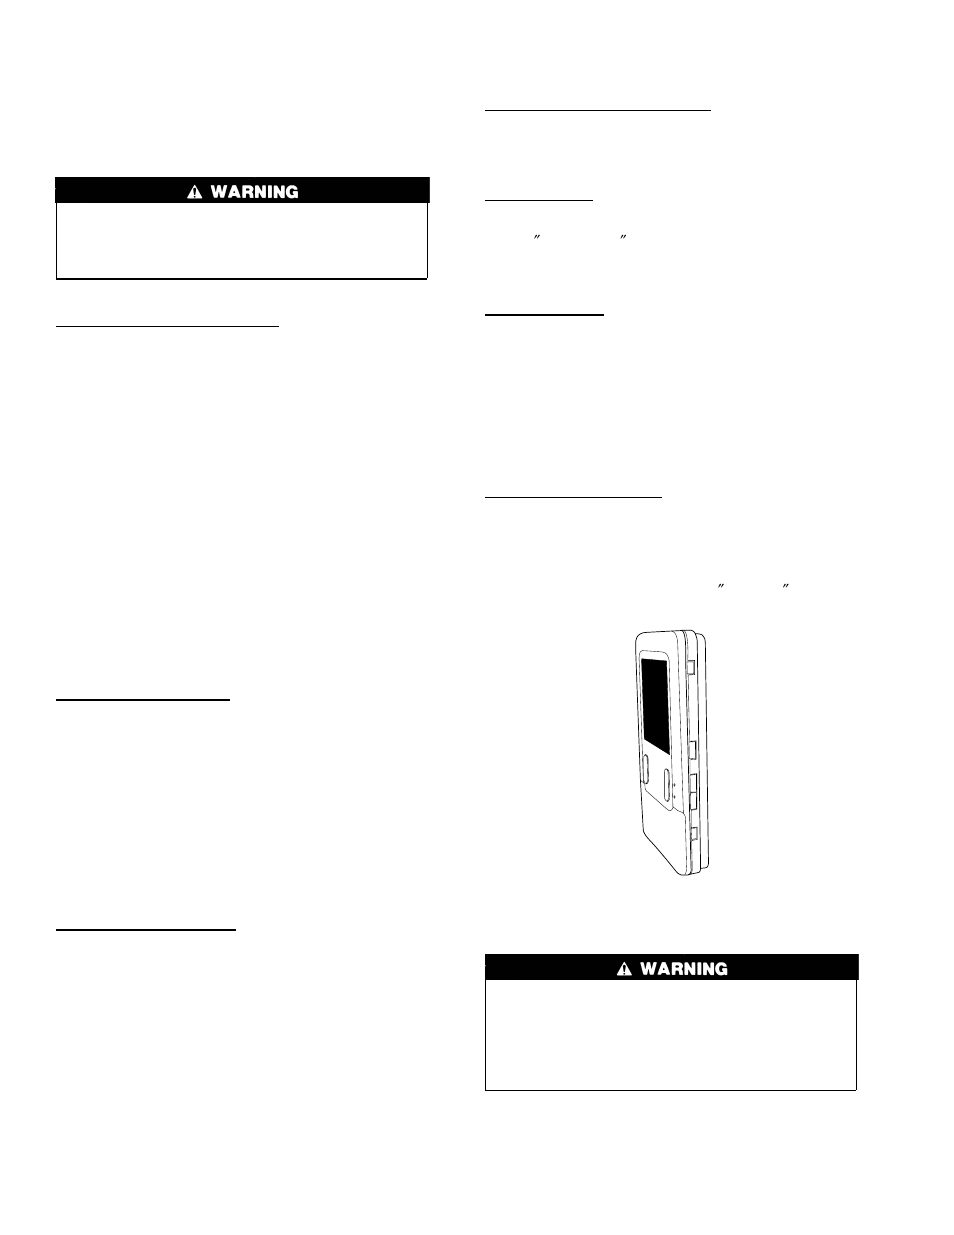 Carrier infinity systxccuid01 user manual page 2 12 publicscrutiny Gallery